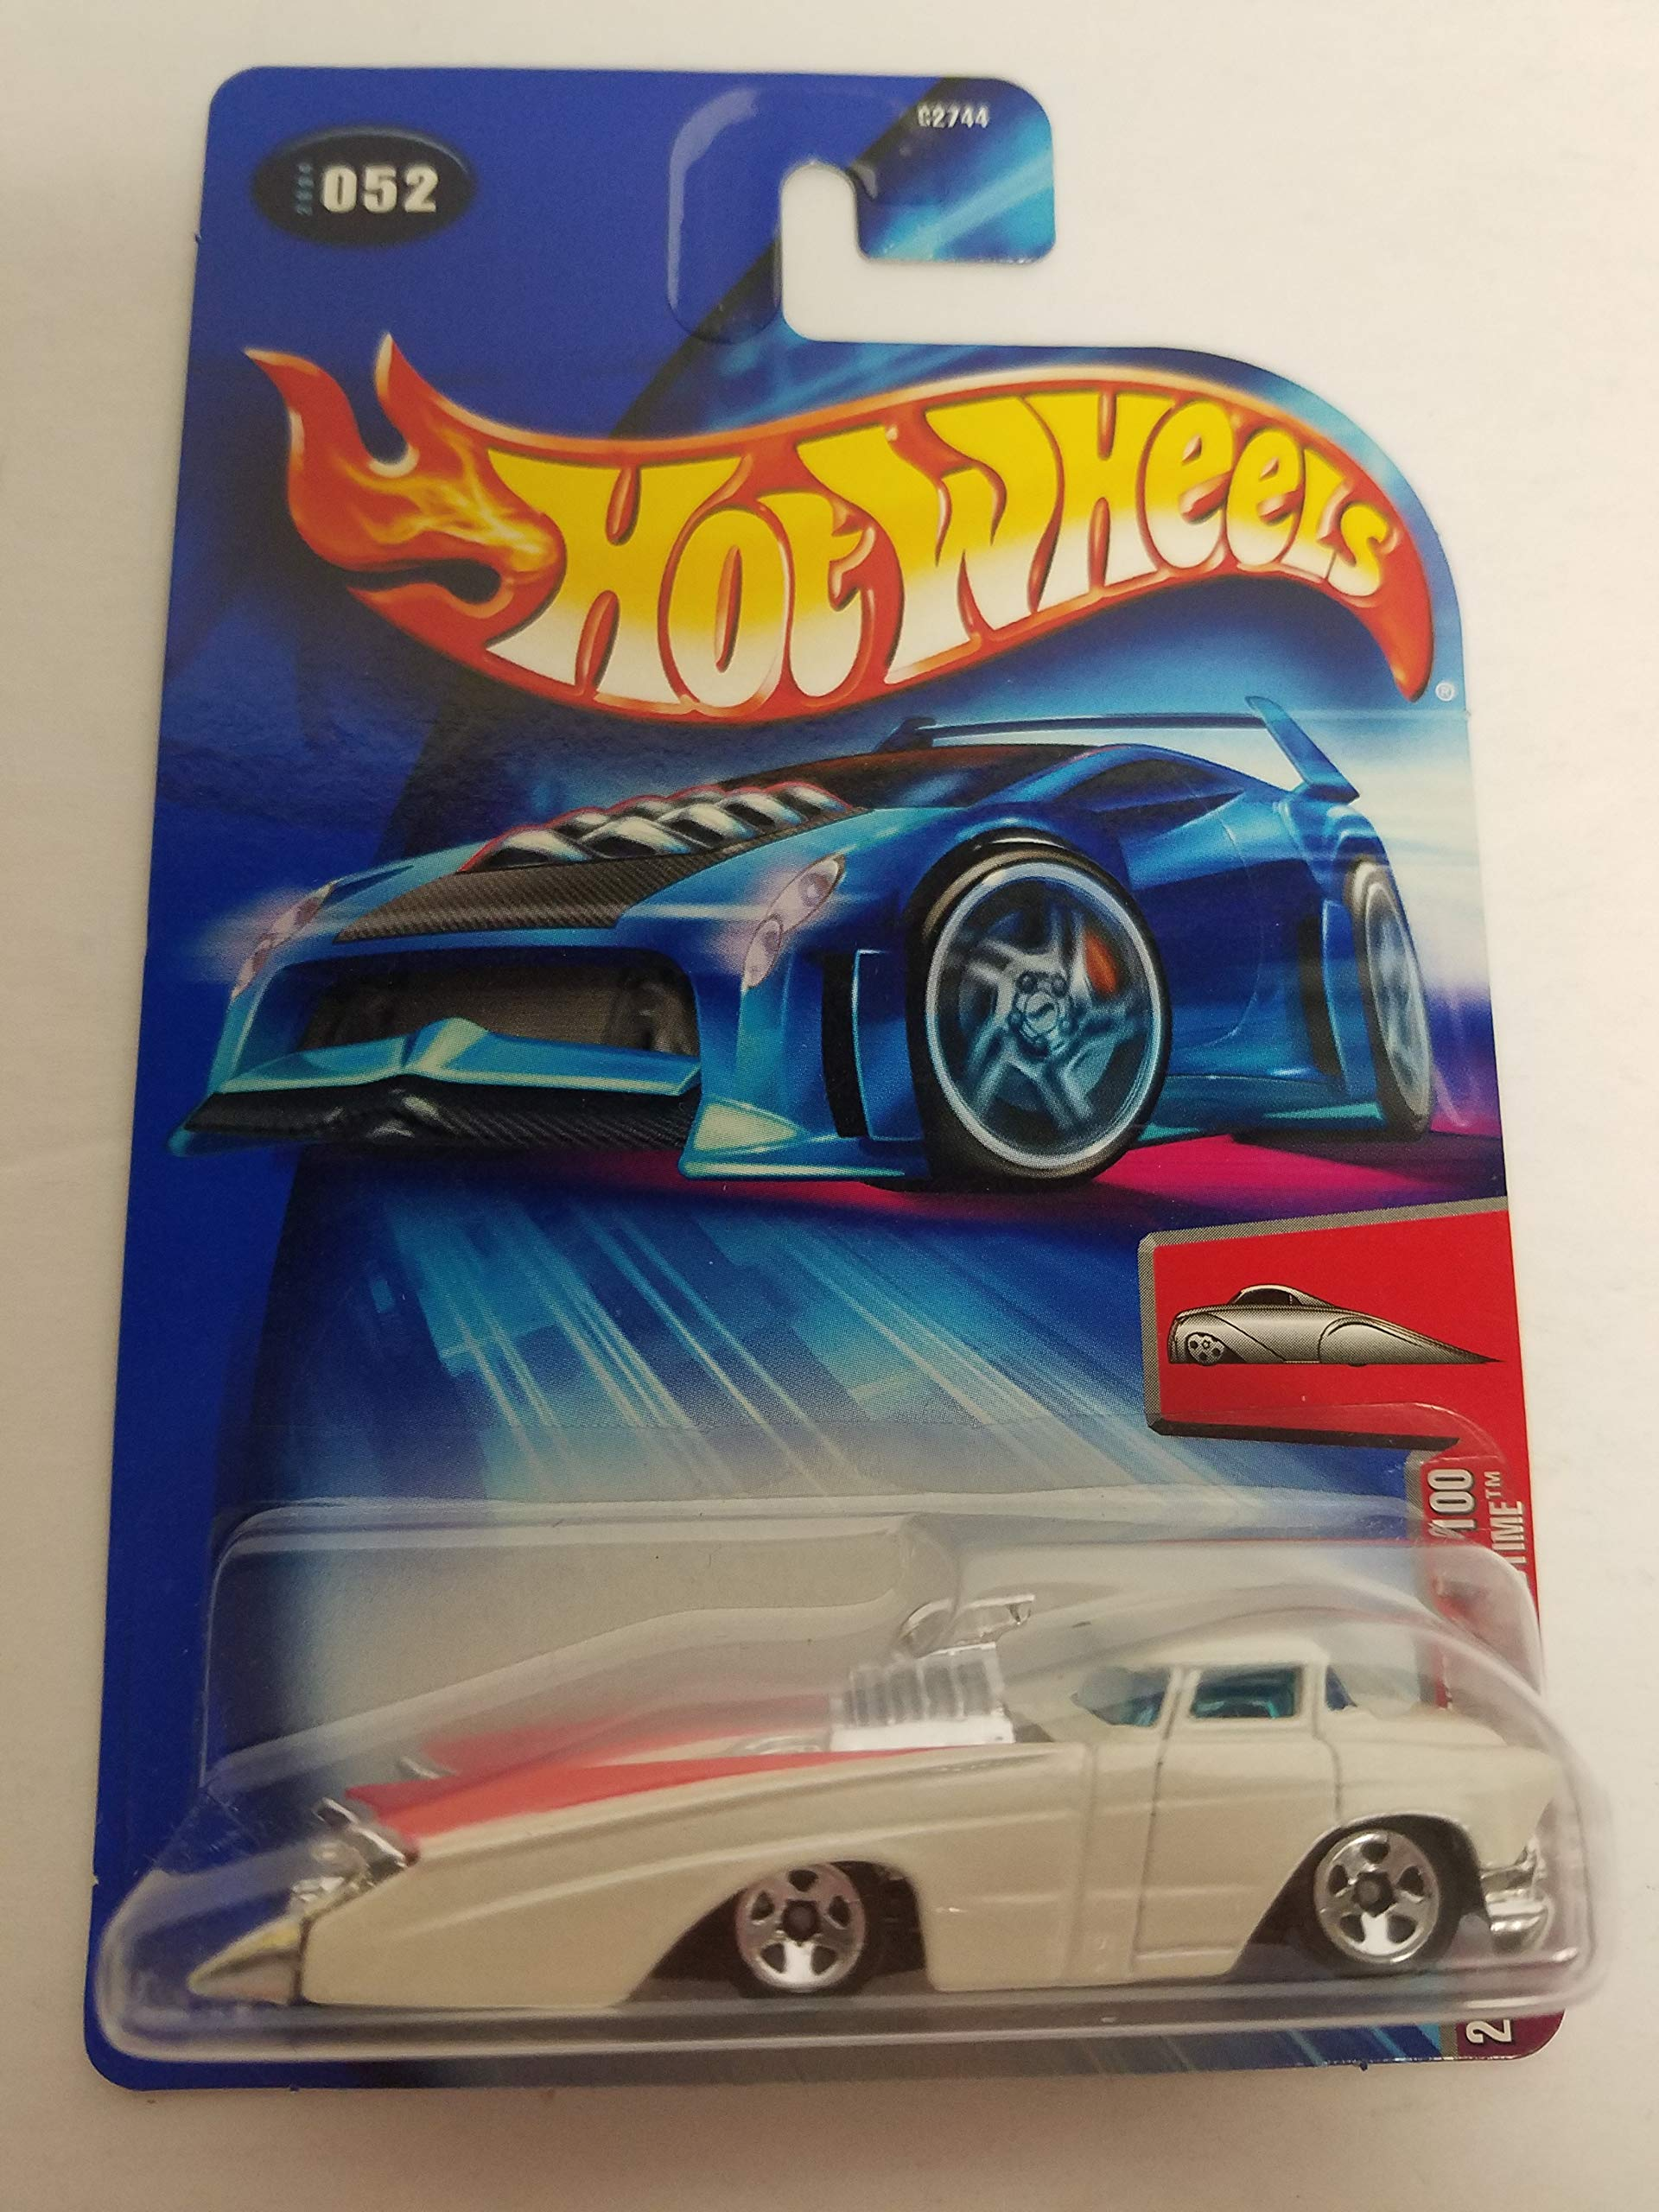 Crooze Bedtime White Color 2004 First Editions 52/100 Hot Wheels Diecast Car No. 052